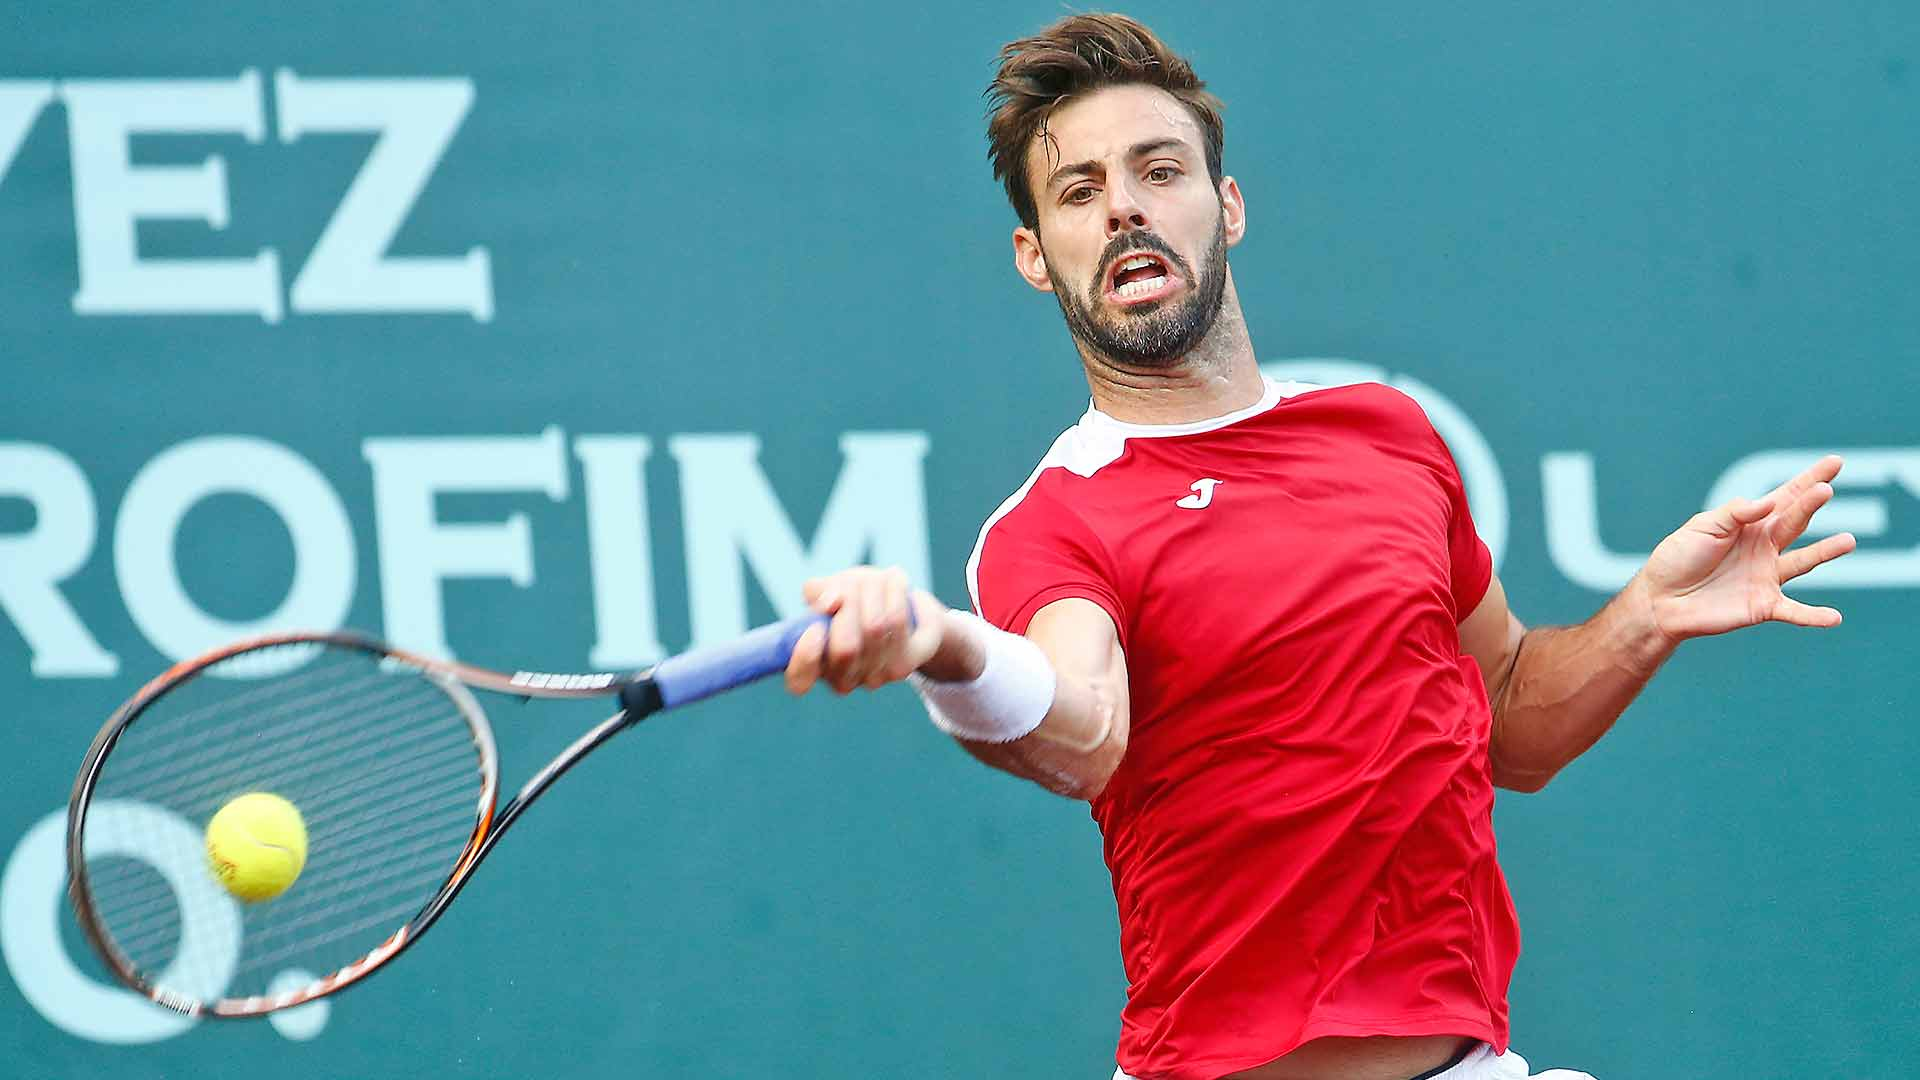 Marcel Granollers hits a forehand in Houston